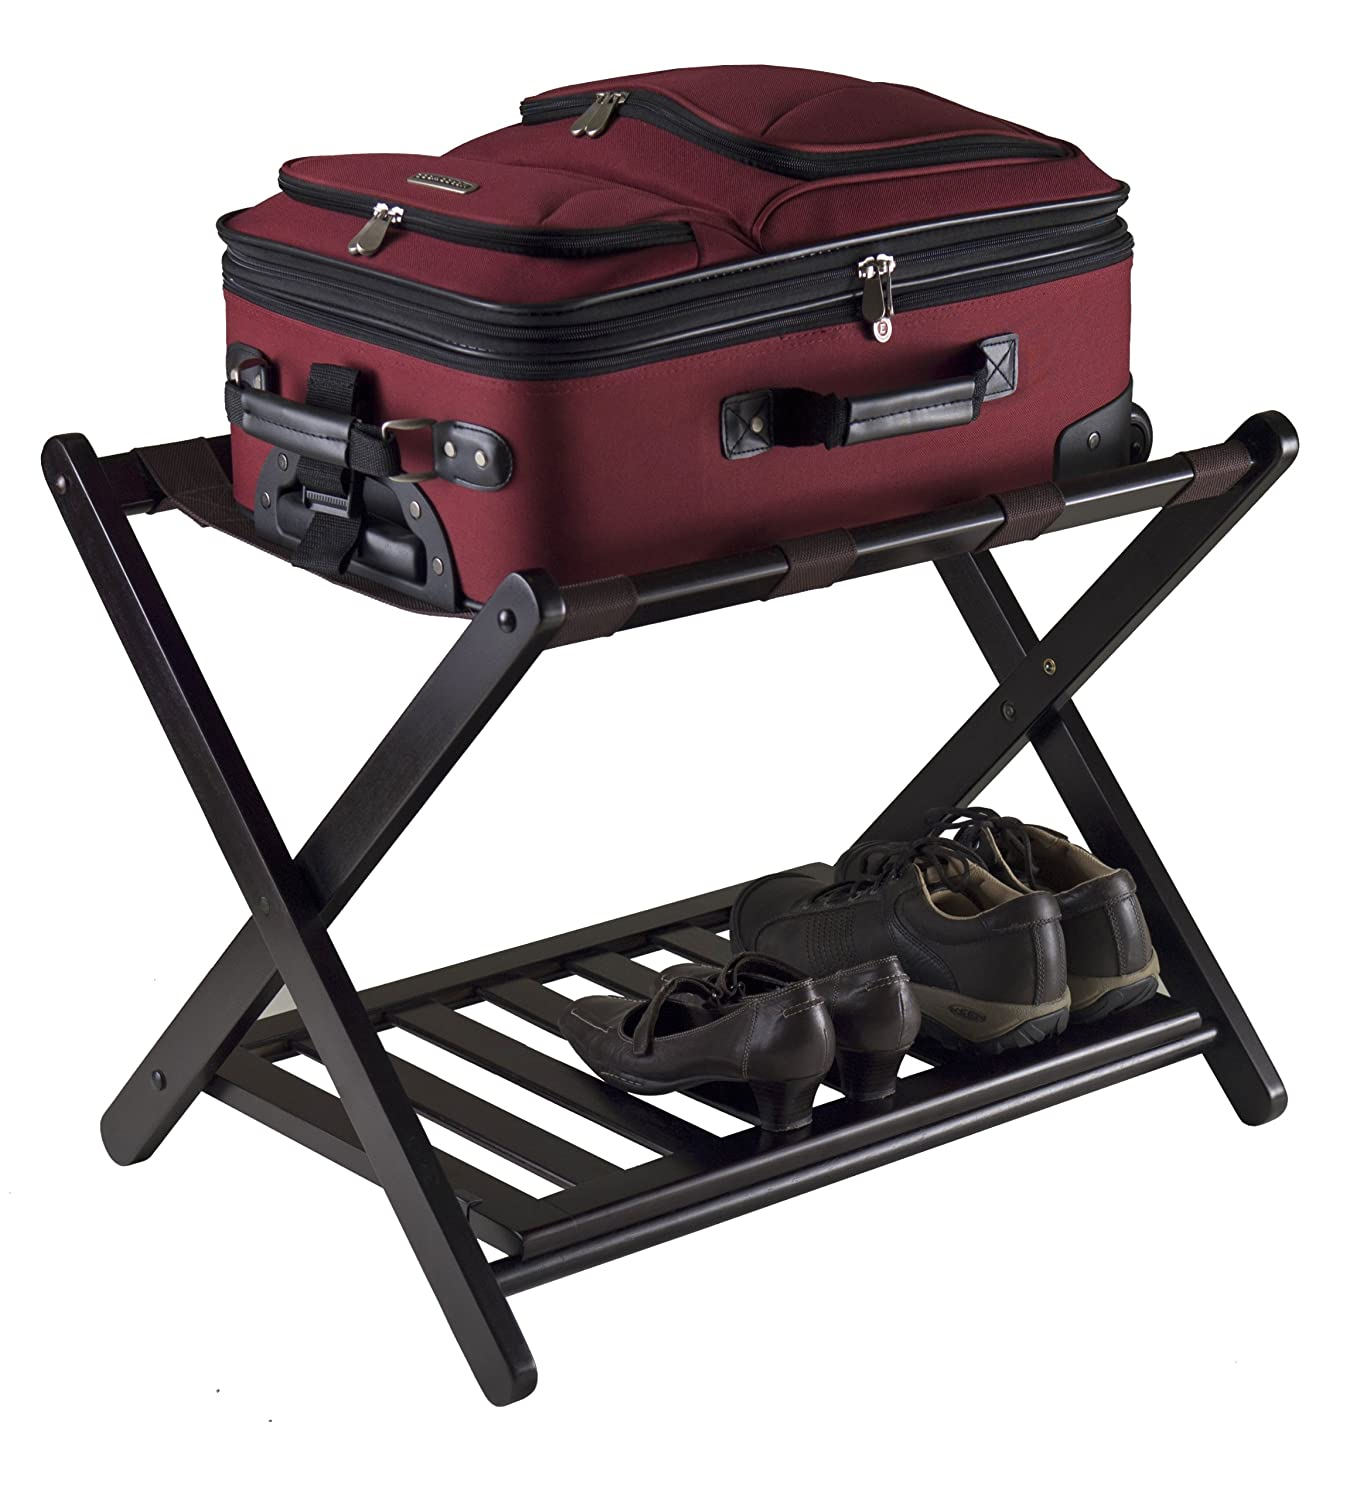 New Winsome Reese Luggage Rack Shelf Storage Stand Bedroom Guest Organizer Sh